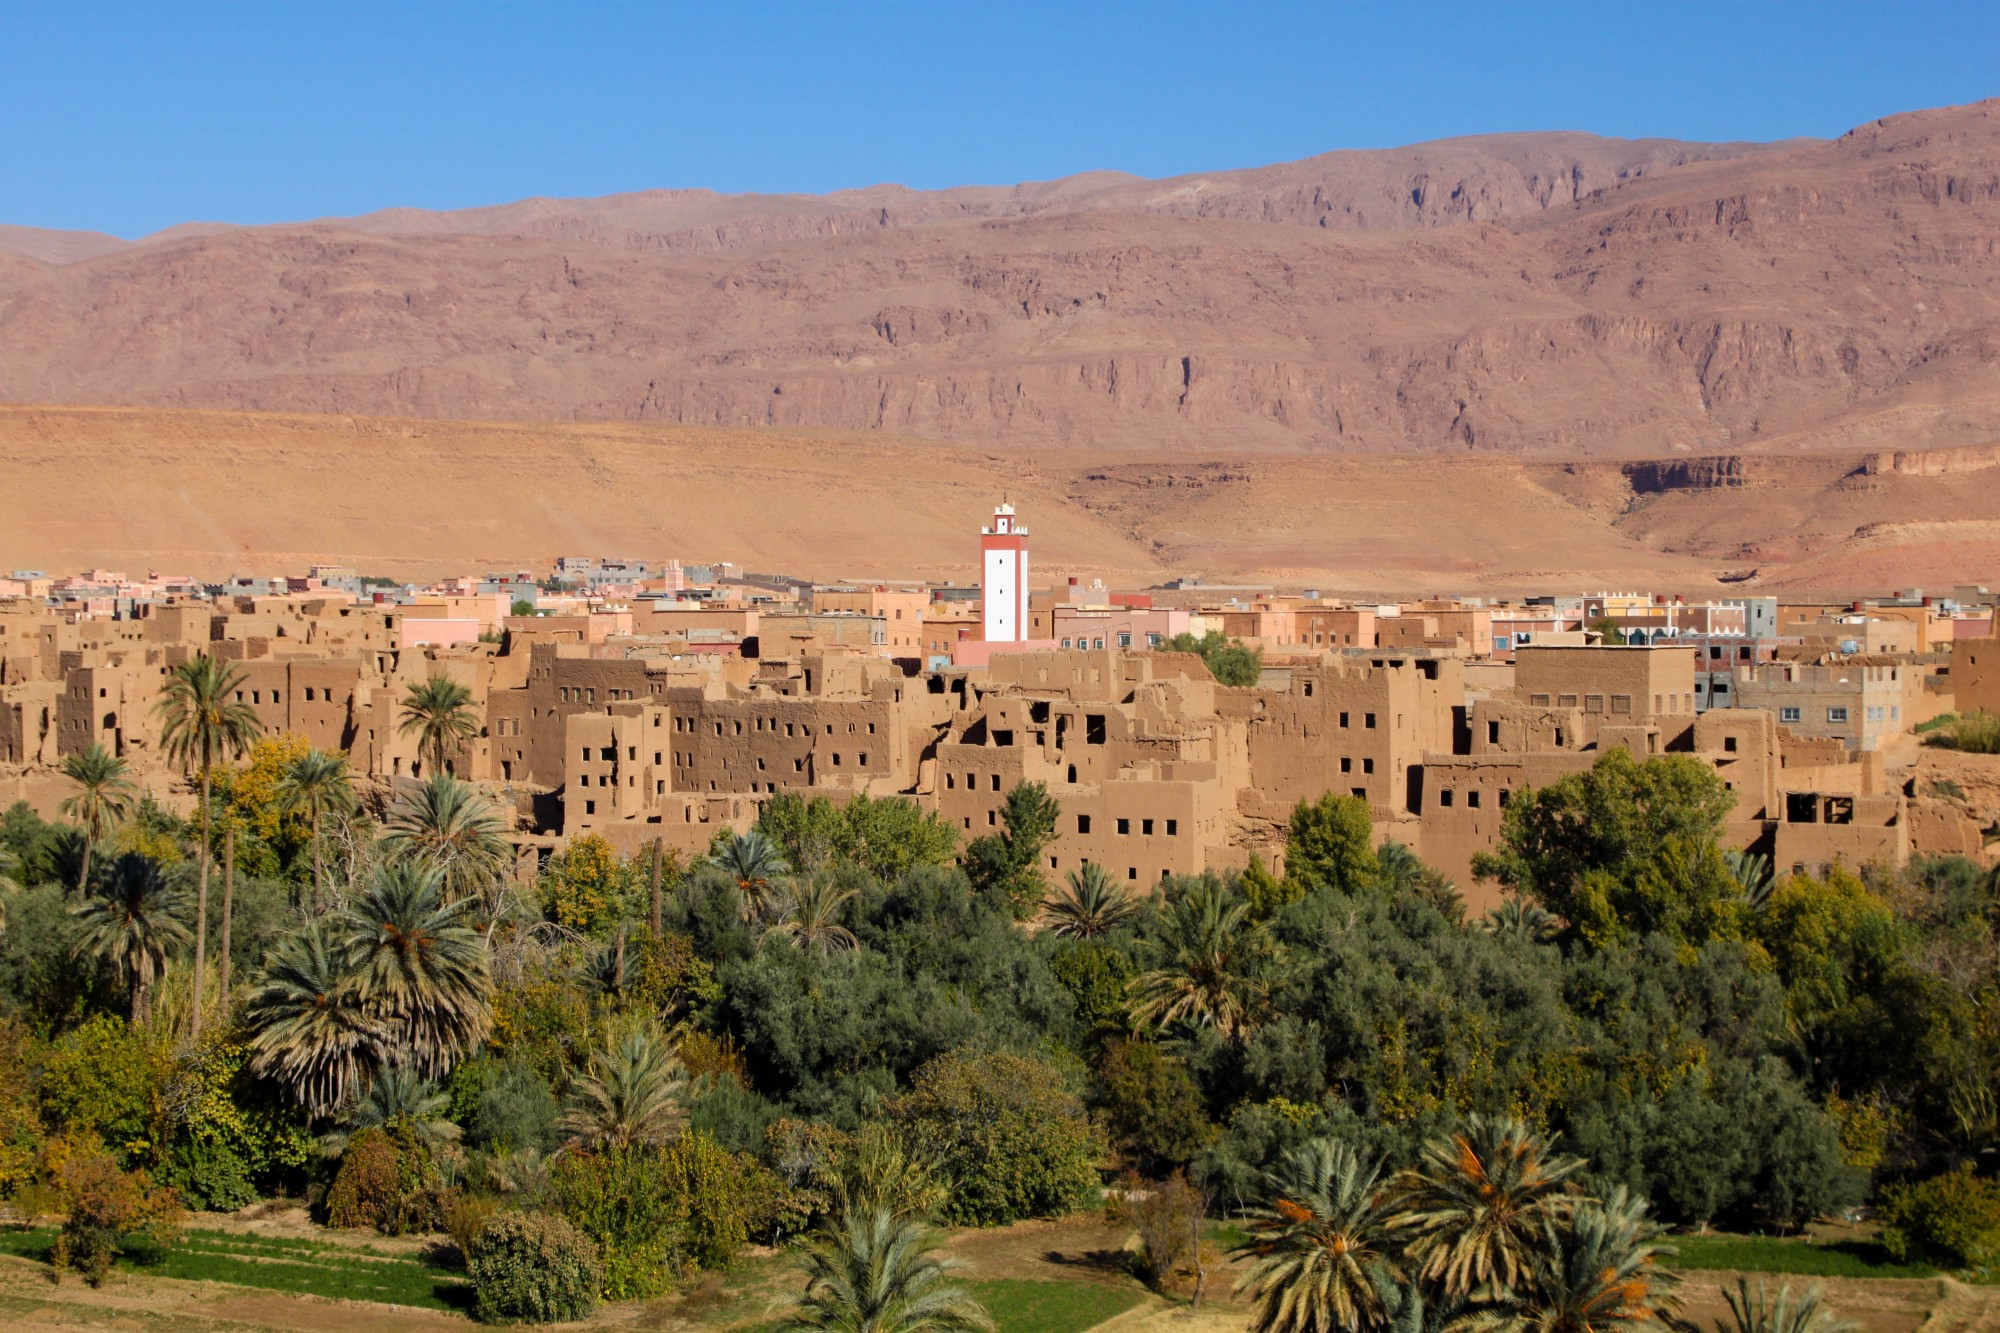 The most beautiful route between Marrakech and Ouarzazate